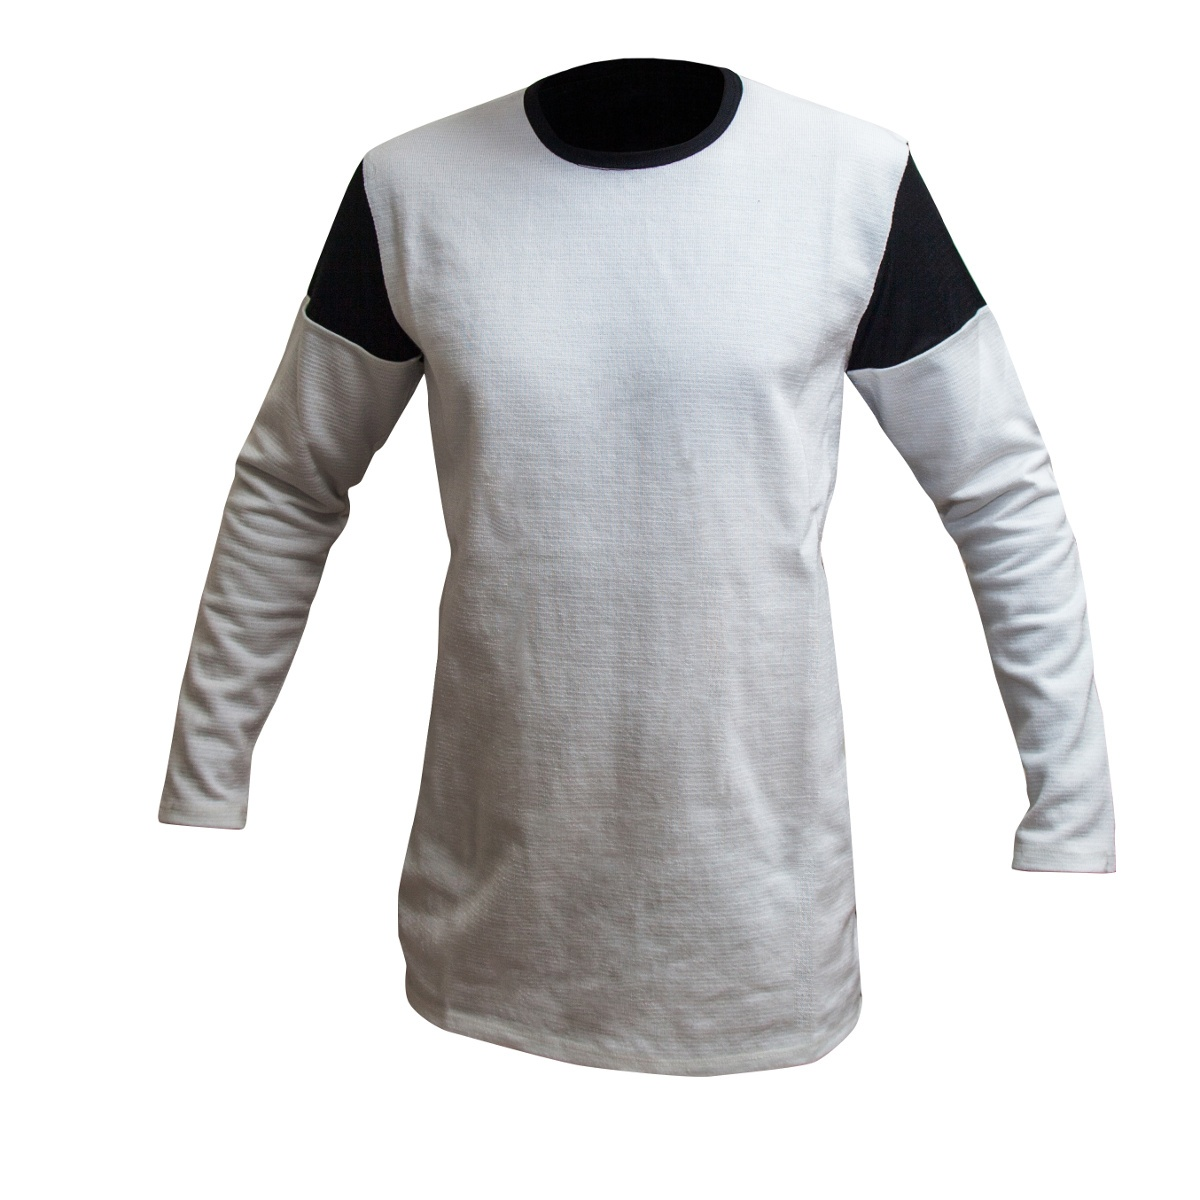 010L Camiseta Anticorte Dynetex